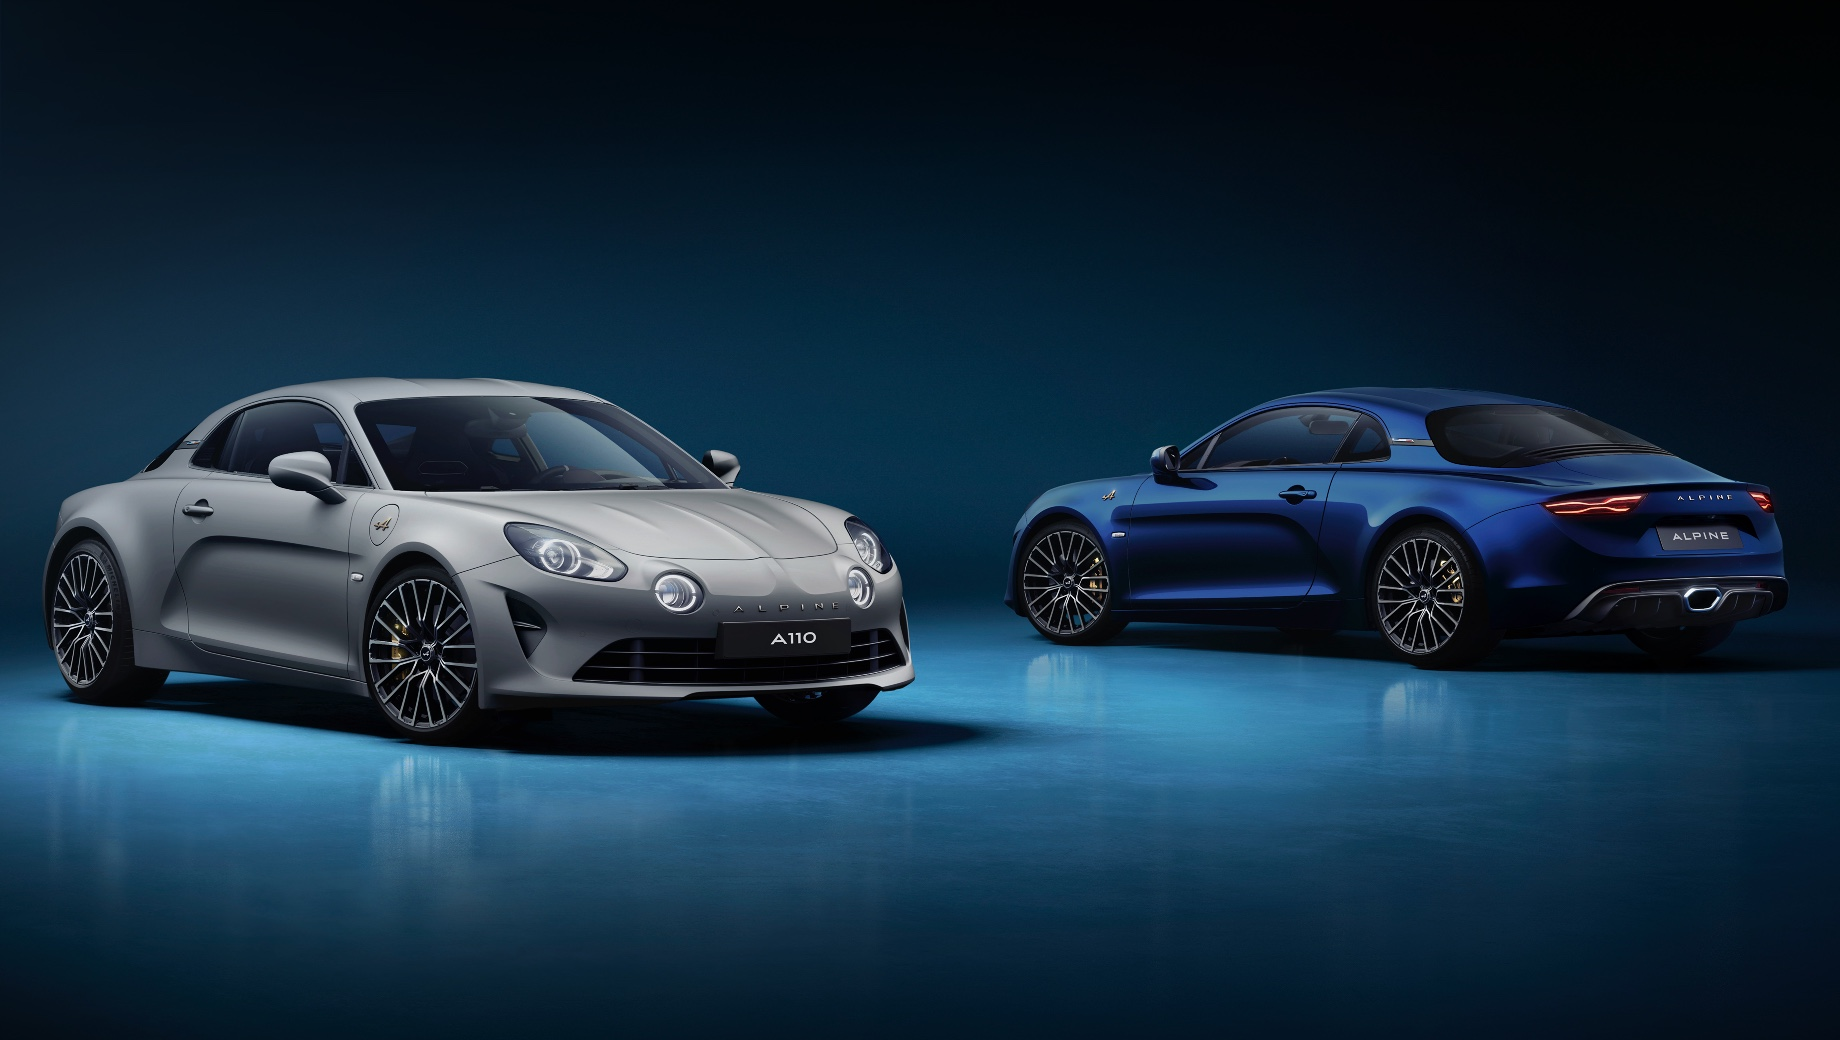 Купе Alpine A110 Legende GT переродилось с новыми силами